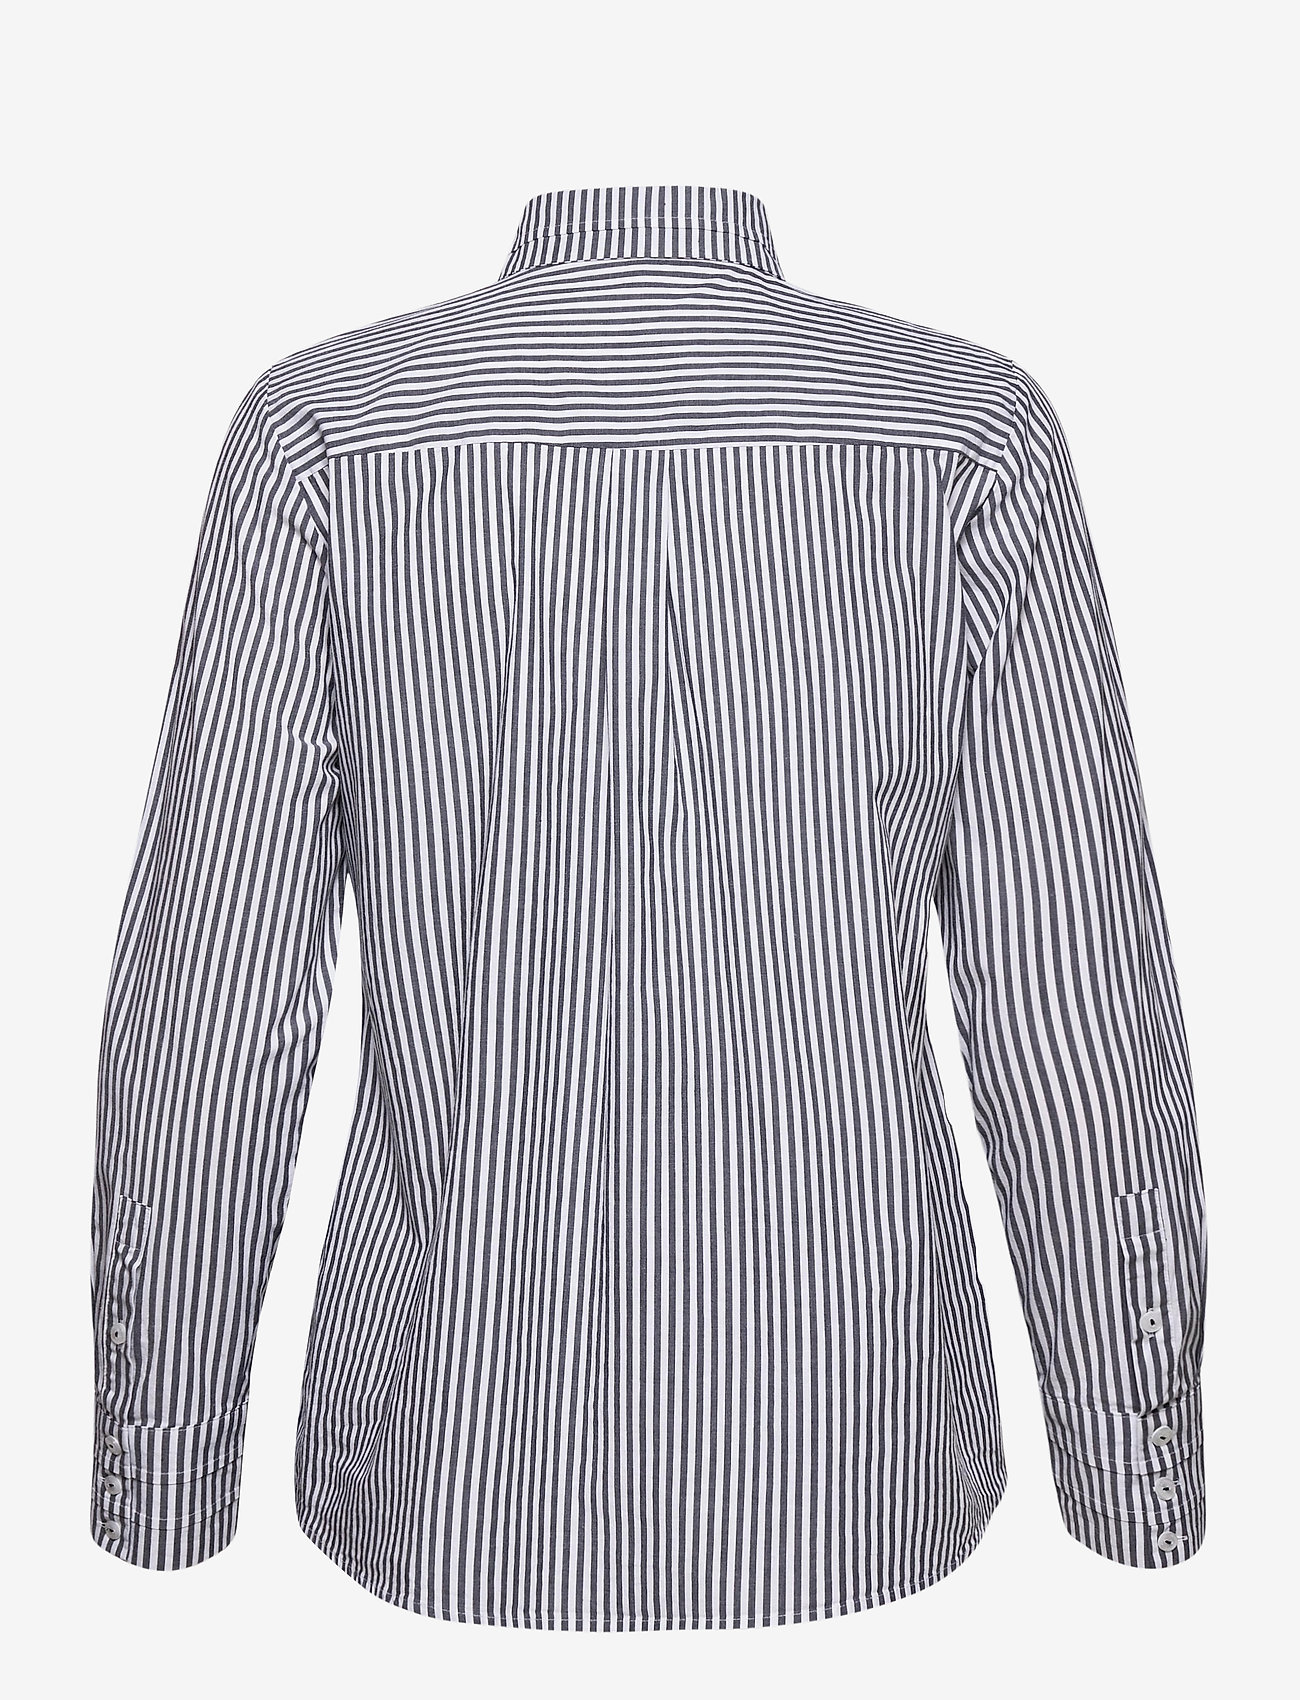 Gerry Weber Edition - BLOUSE LONG-SLEEVE - chemises à manches longues - white dark navy - 1